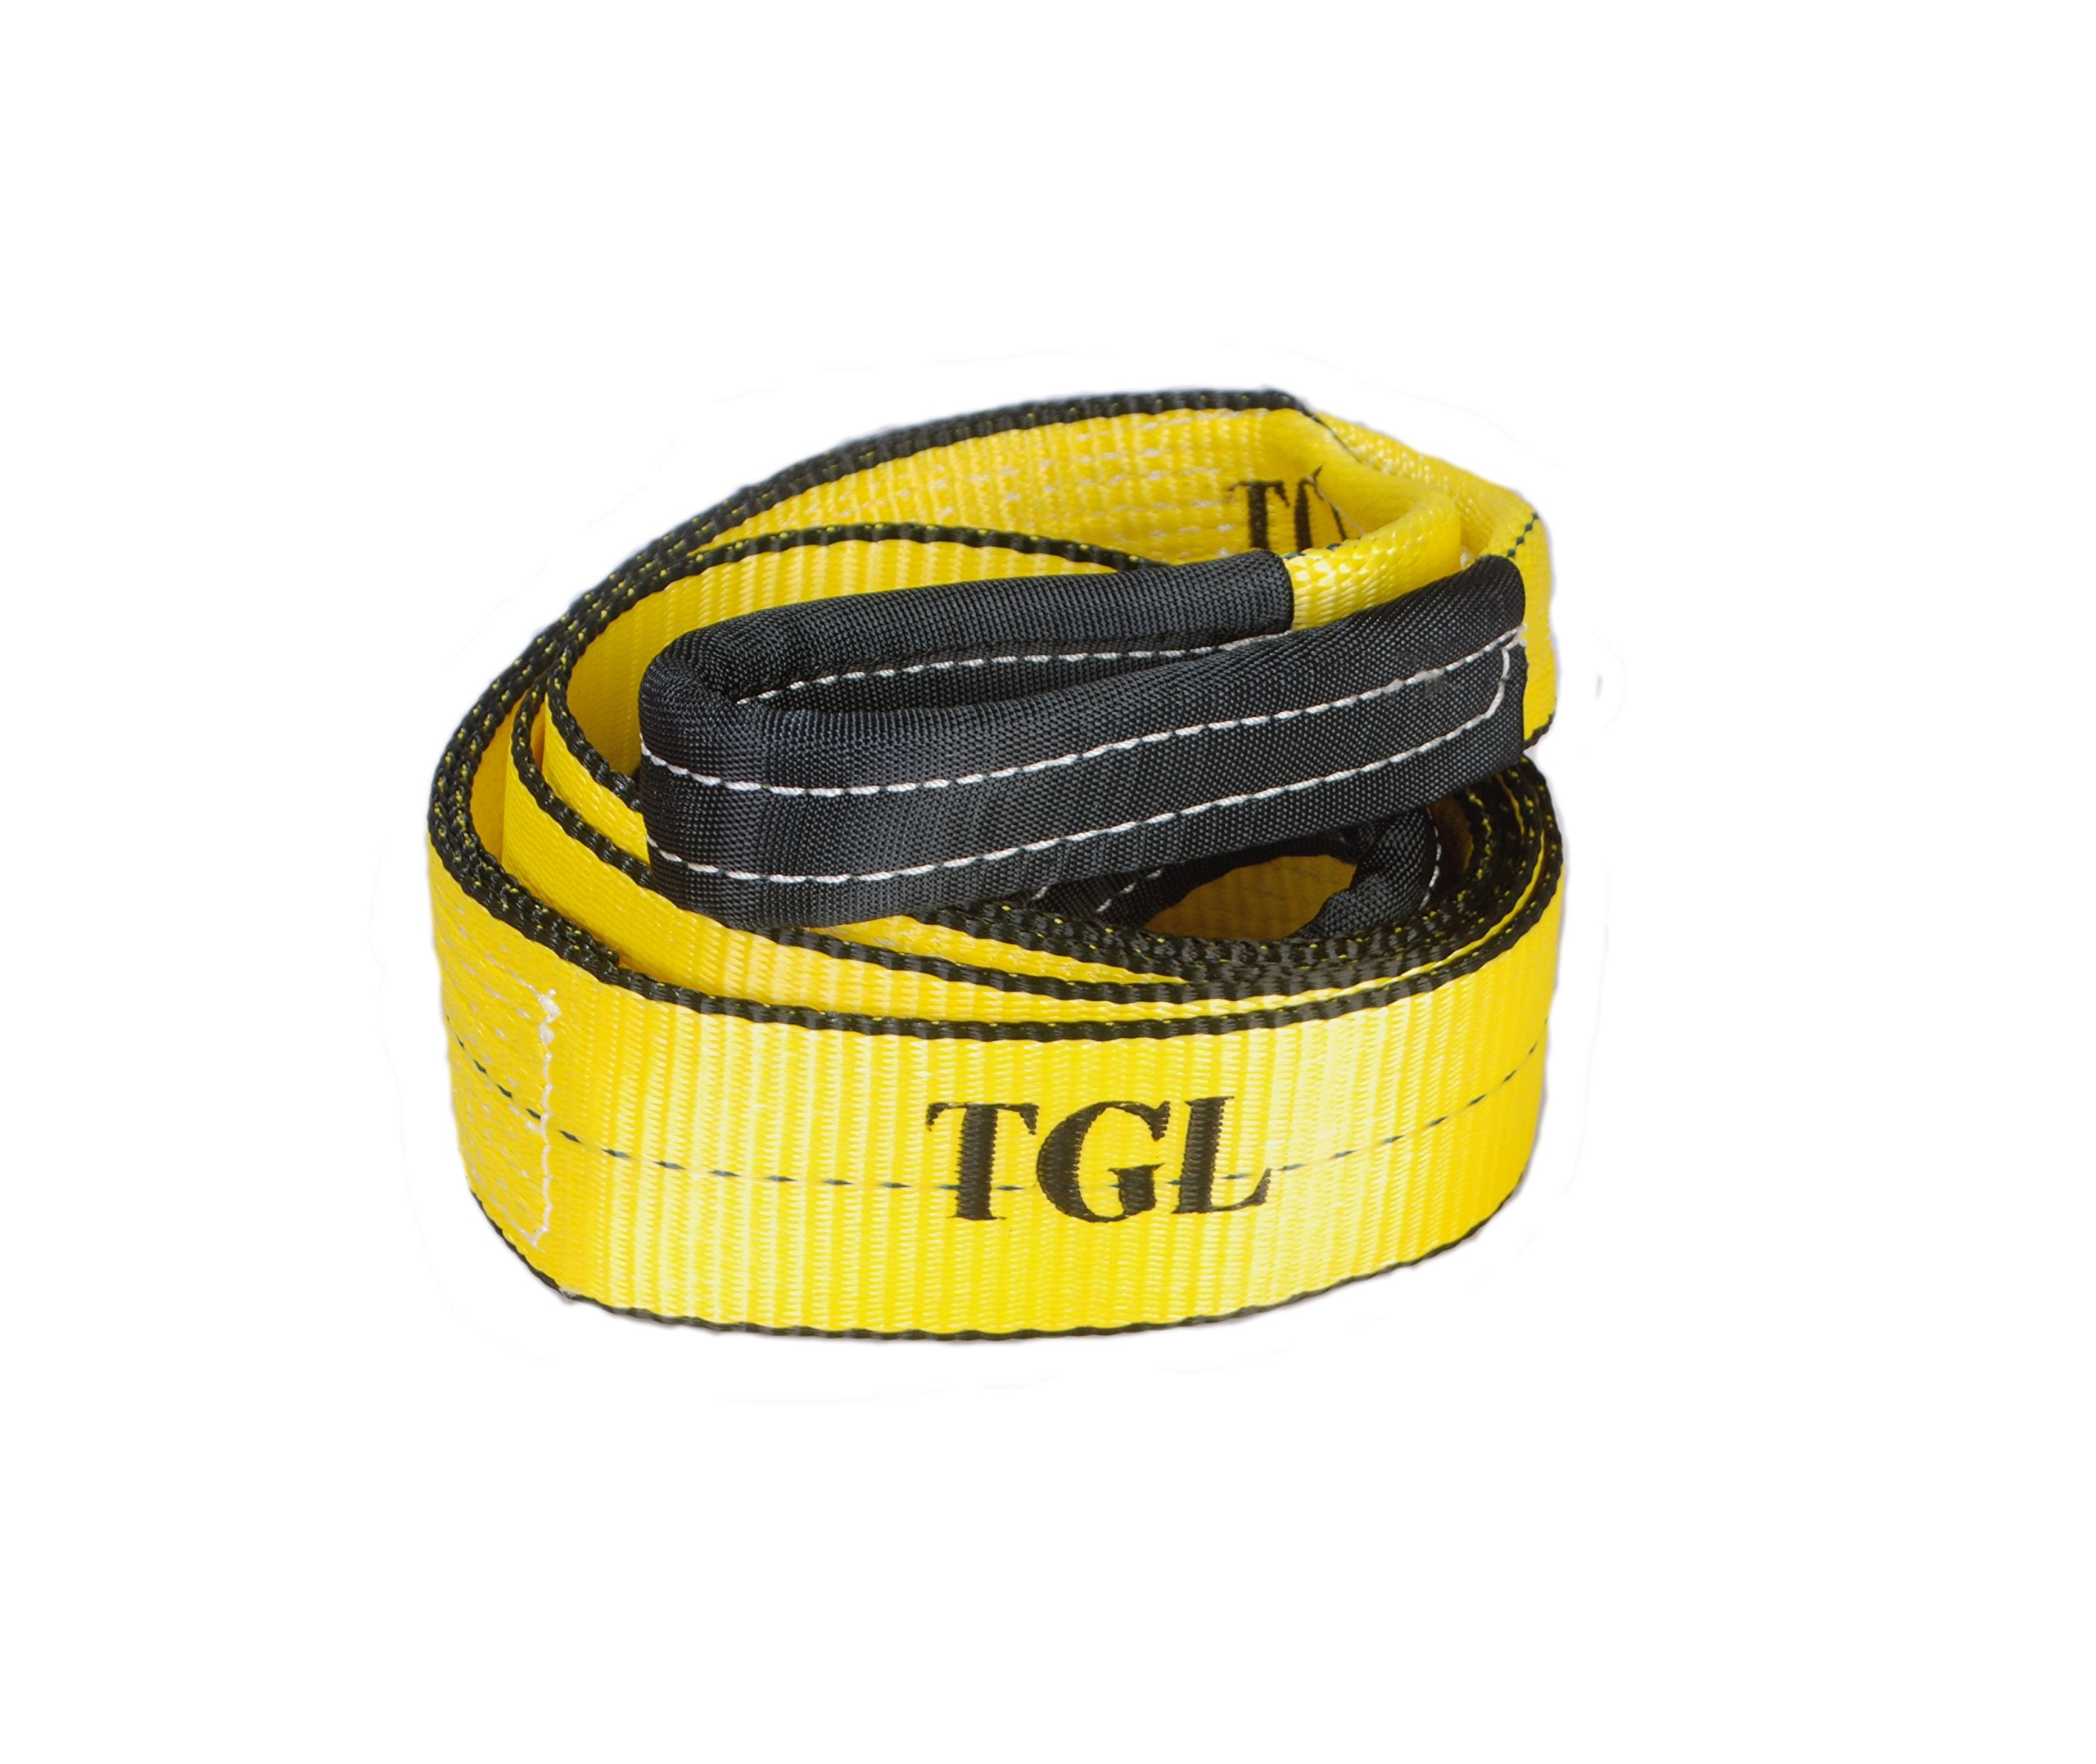 TGL 3 inch, 8 Foot Tree Saver, Winch Strap, Tow Strap 30,000 Pound Capacity by TGL